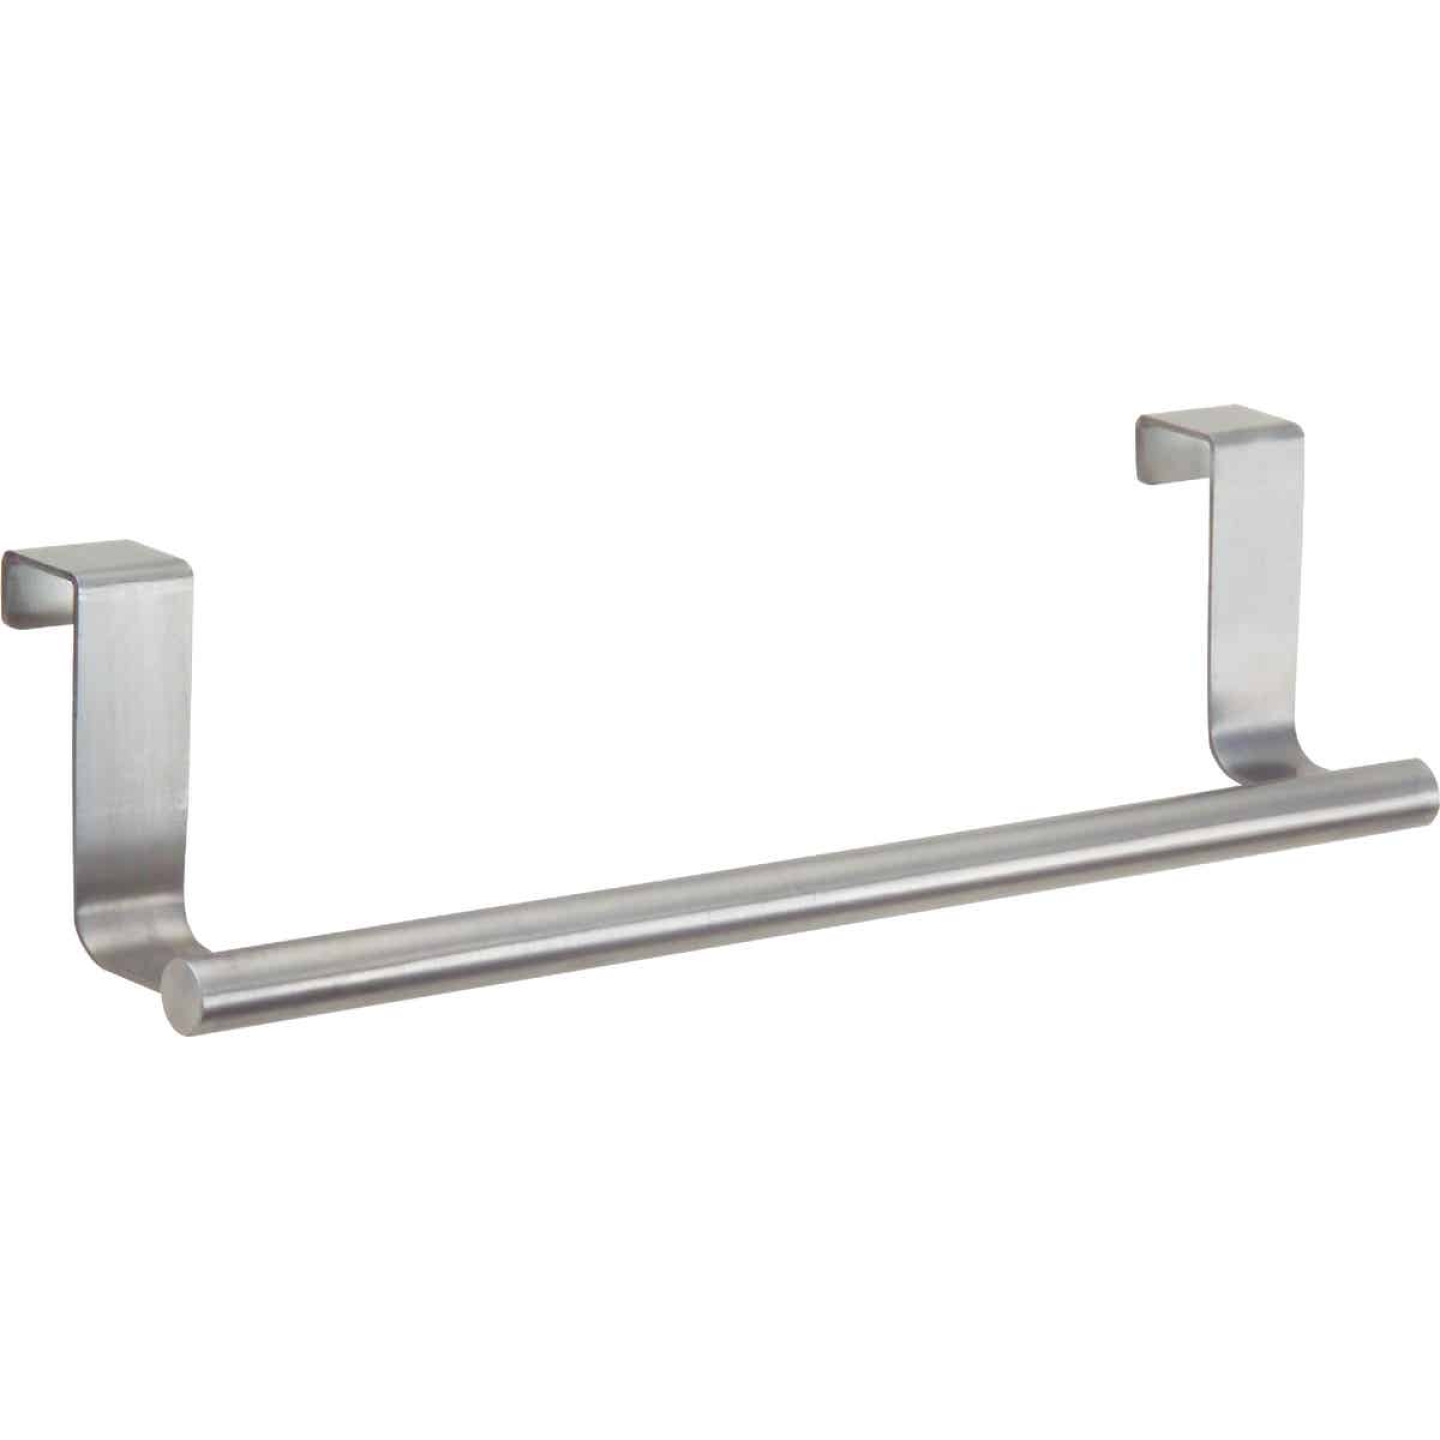 InterDesign Zia 9-1/4 in. Brushed Stainless Steel Over The Cabinet Towel Bar Image 1